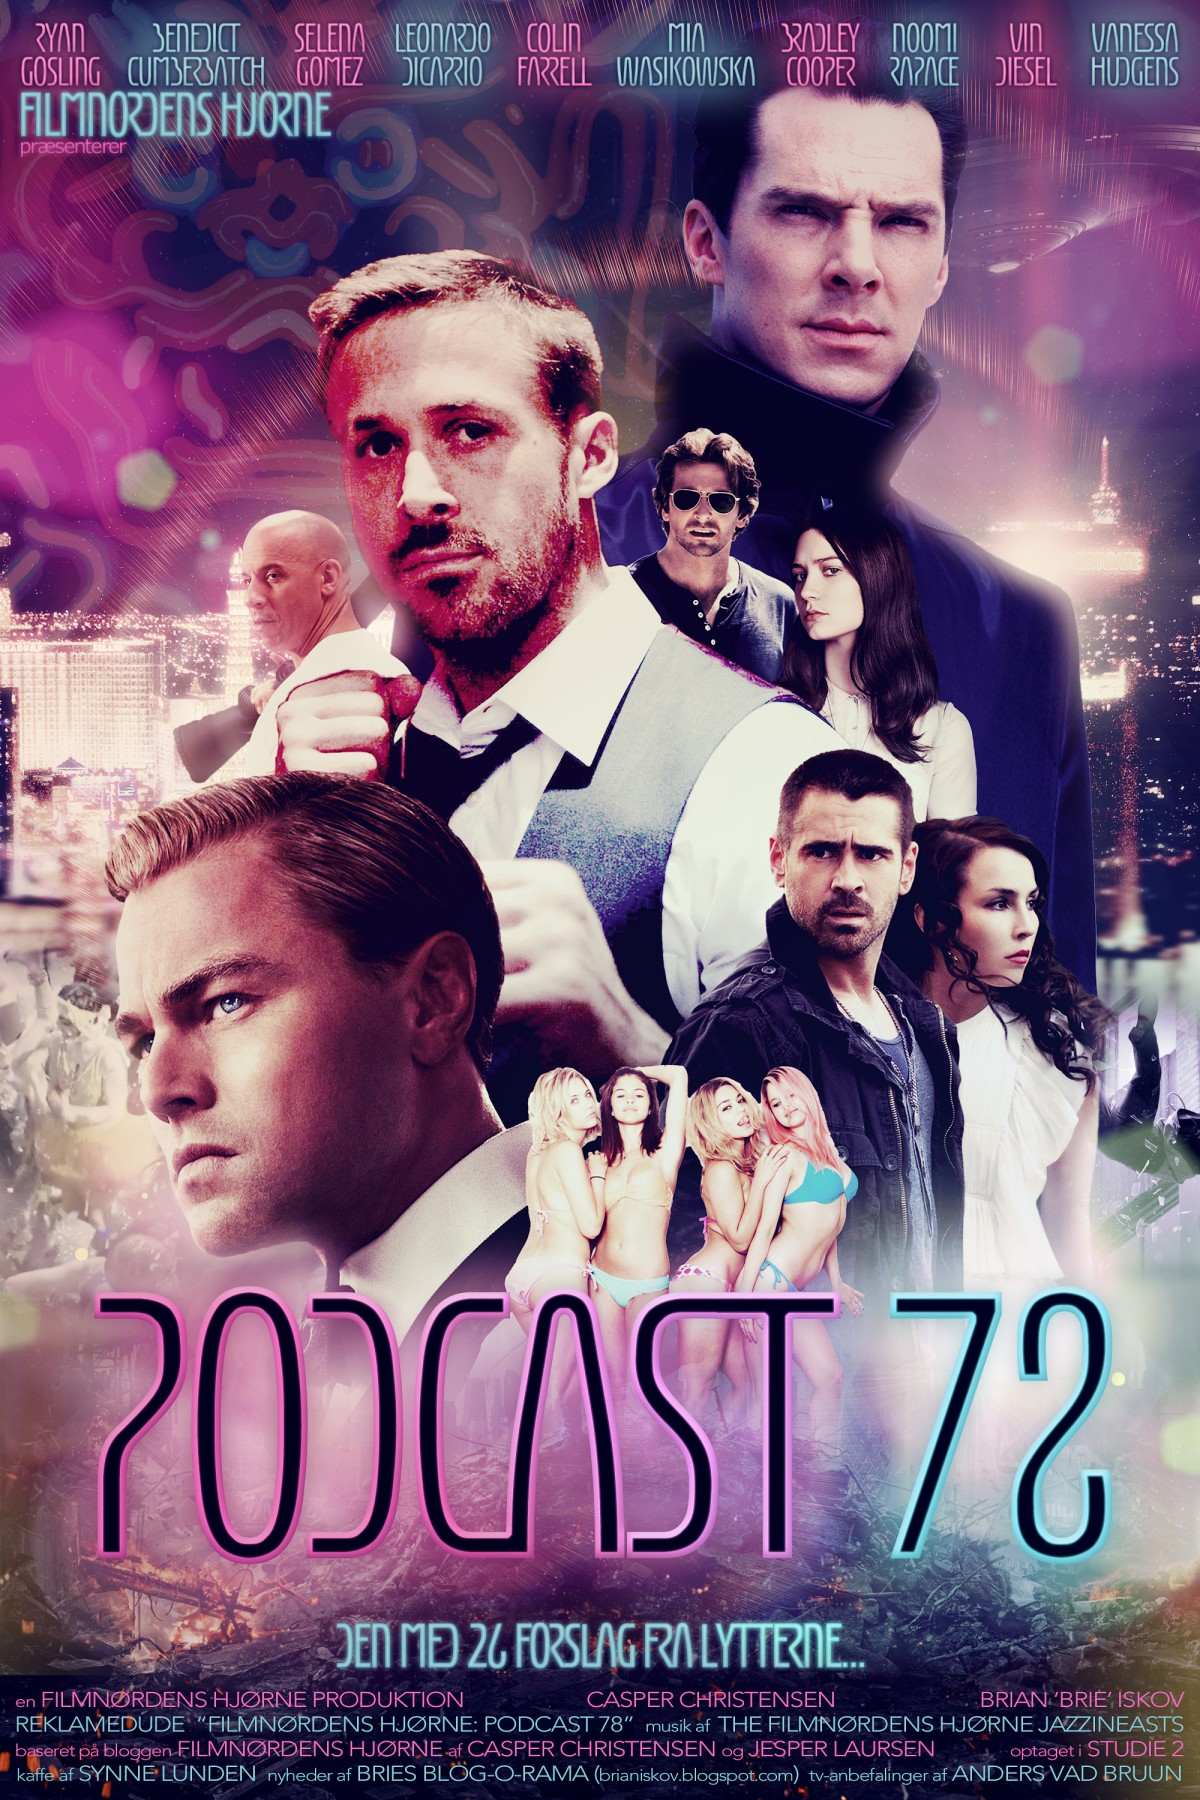 Poster-for-Podcast-78-flat-2.jpg